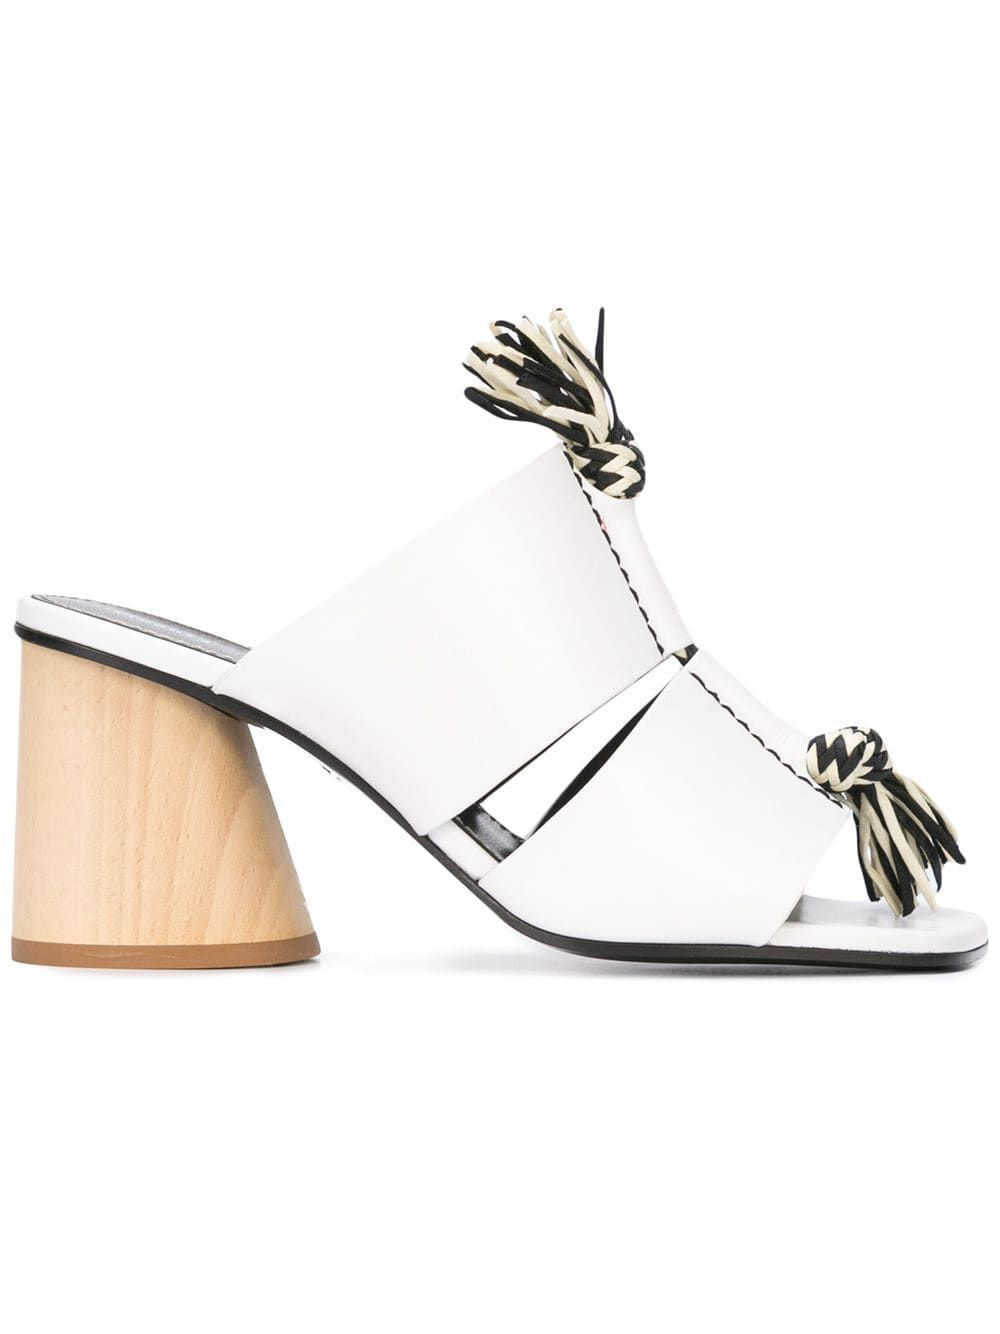 Women S Knotted Rope Block Heel Mule Sandals In Optic White Rope Sandals Heeled Mules Sandals Heeled Mules